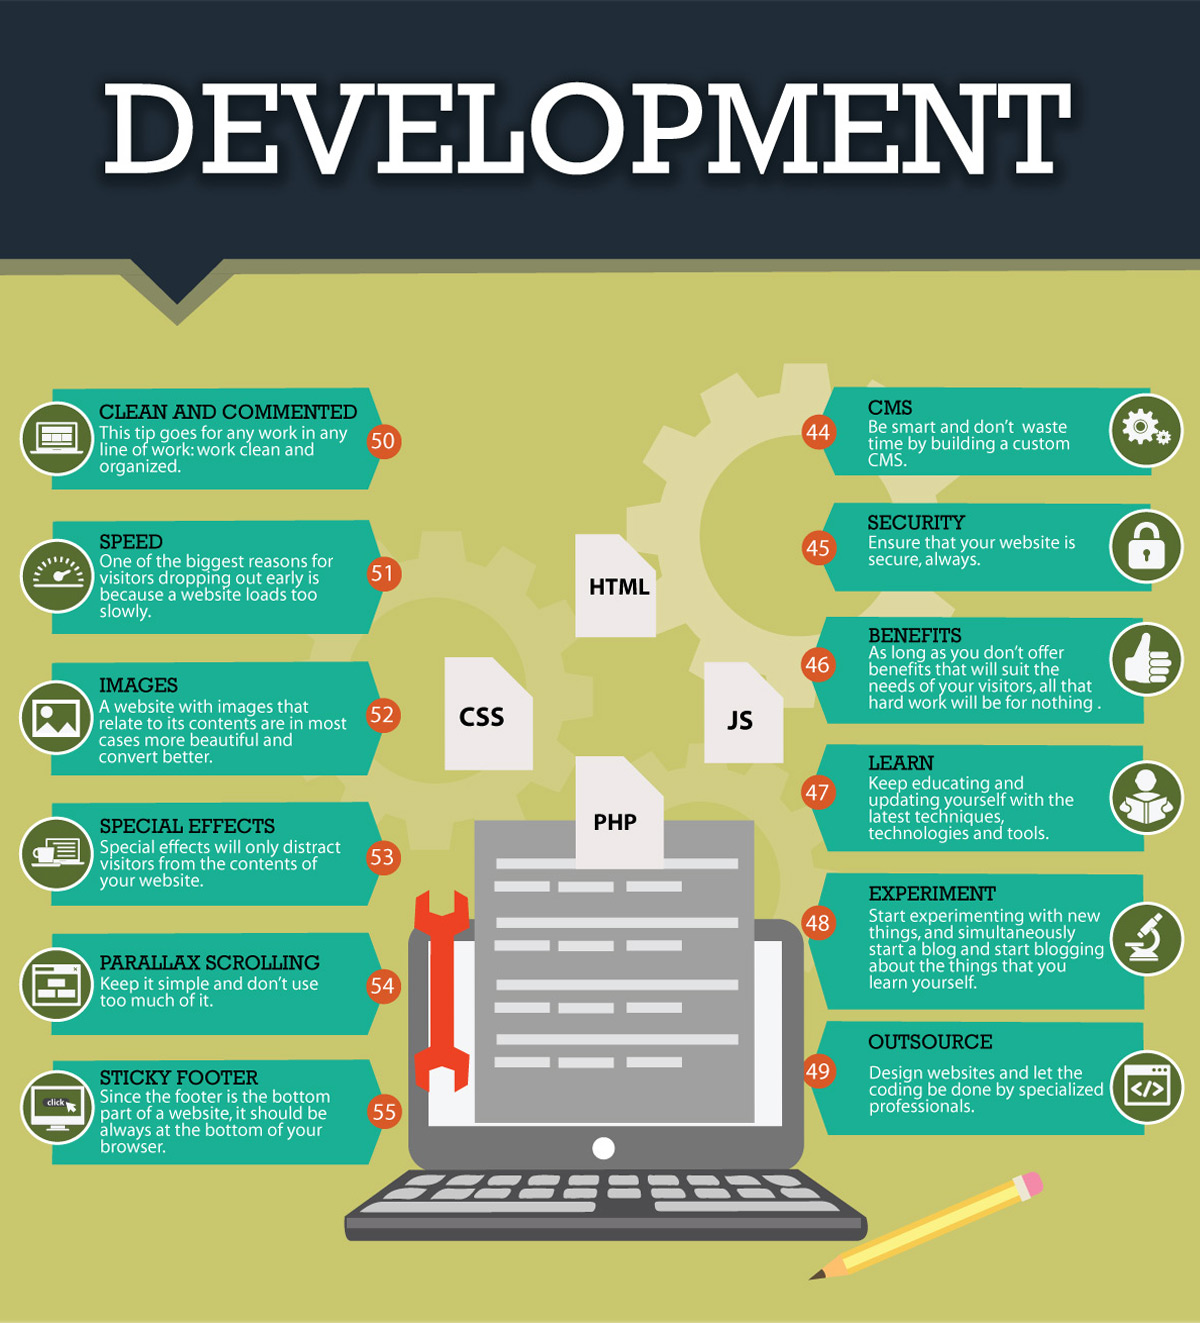 4-web-design-tips-development-infographic.jpg